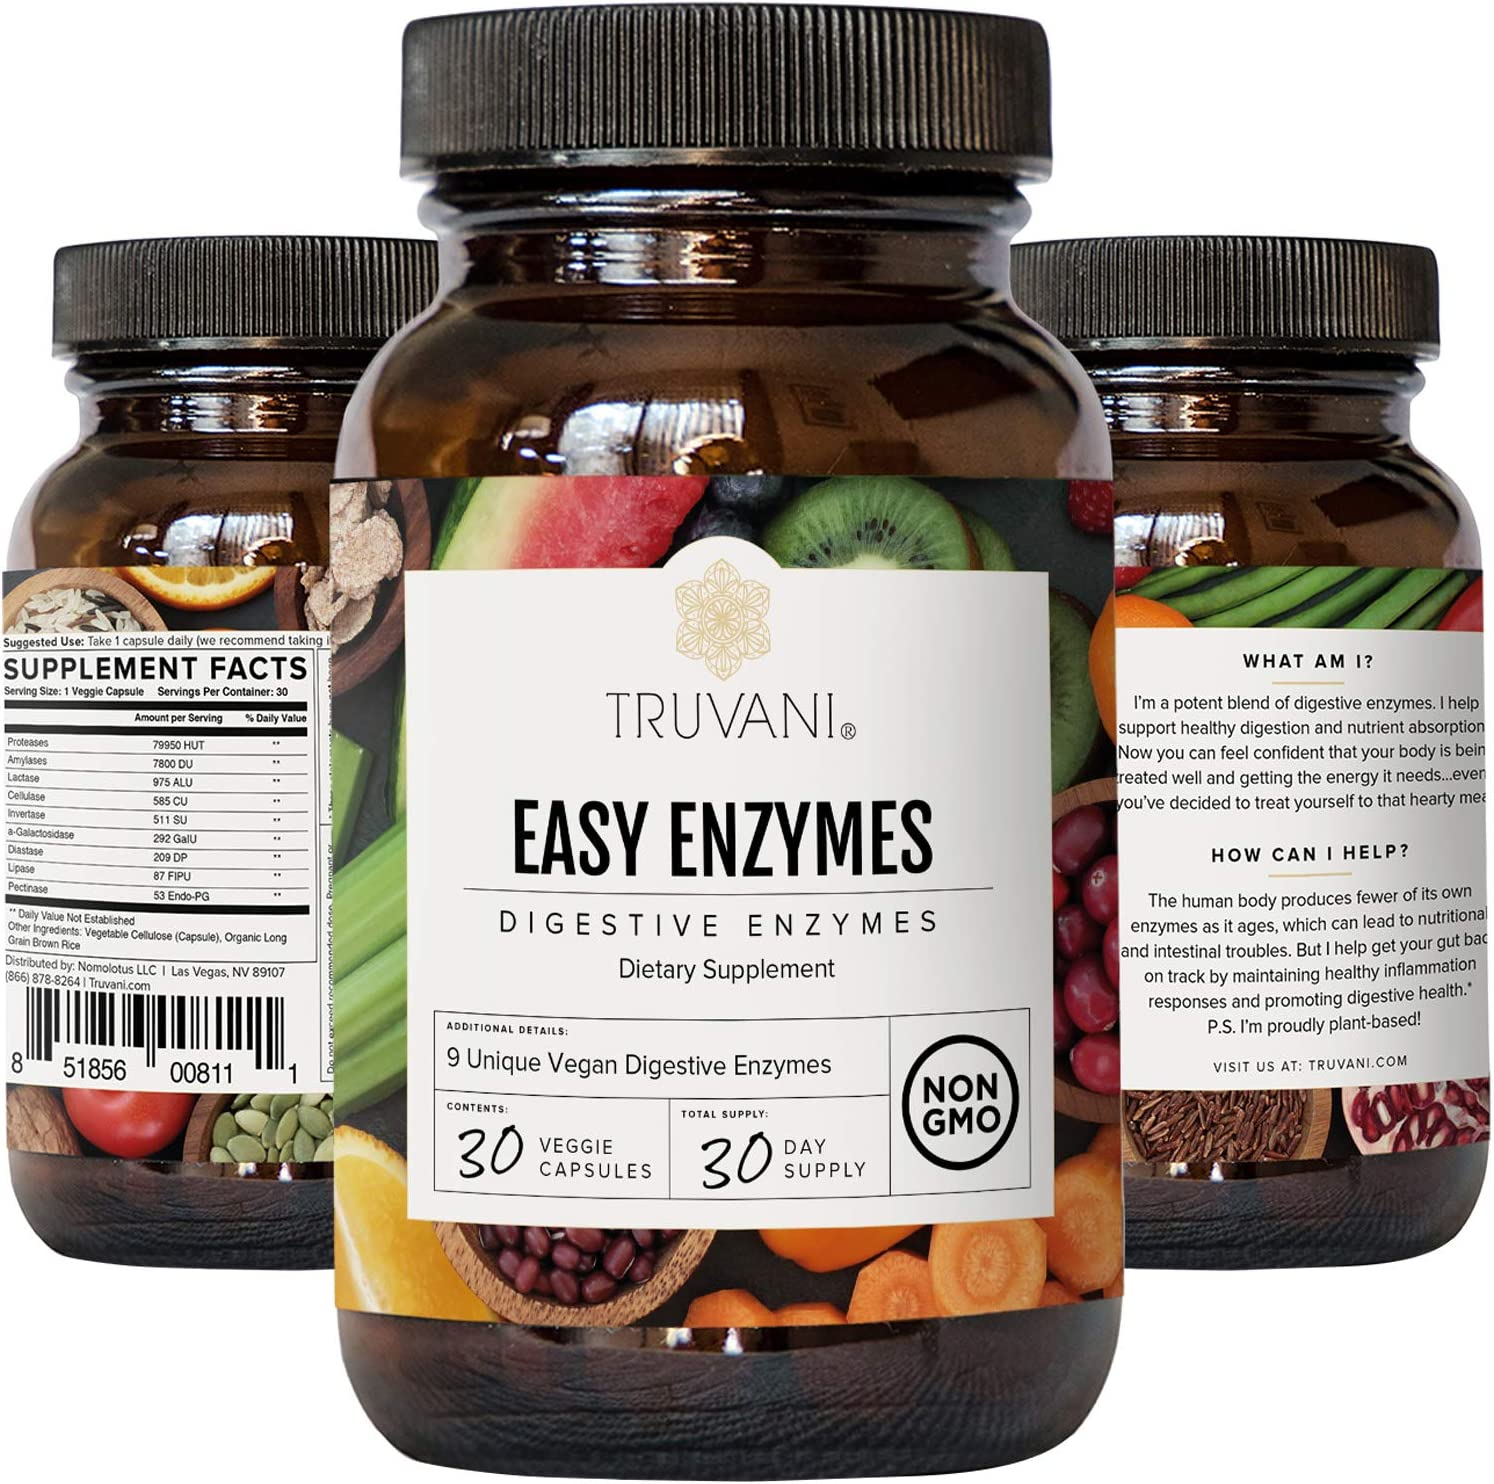 Truvani Digestive Enzymes | 9 Enzyme Blend | Digestive Support | Reduce Bloating | Increased Nutrient Absorption | Non-GMO Capsules| 30 Day Supply